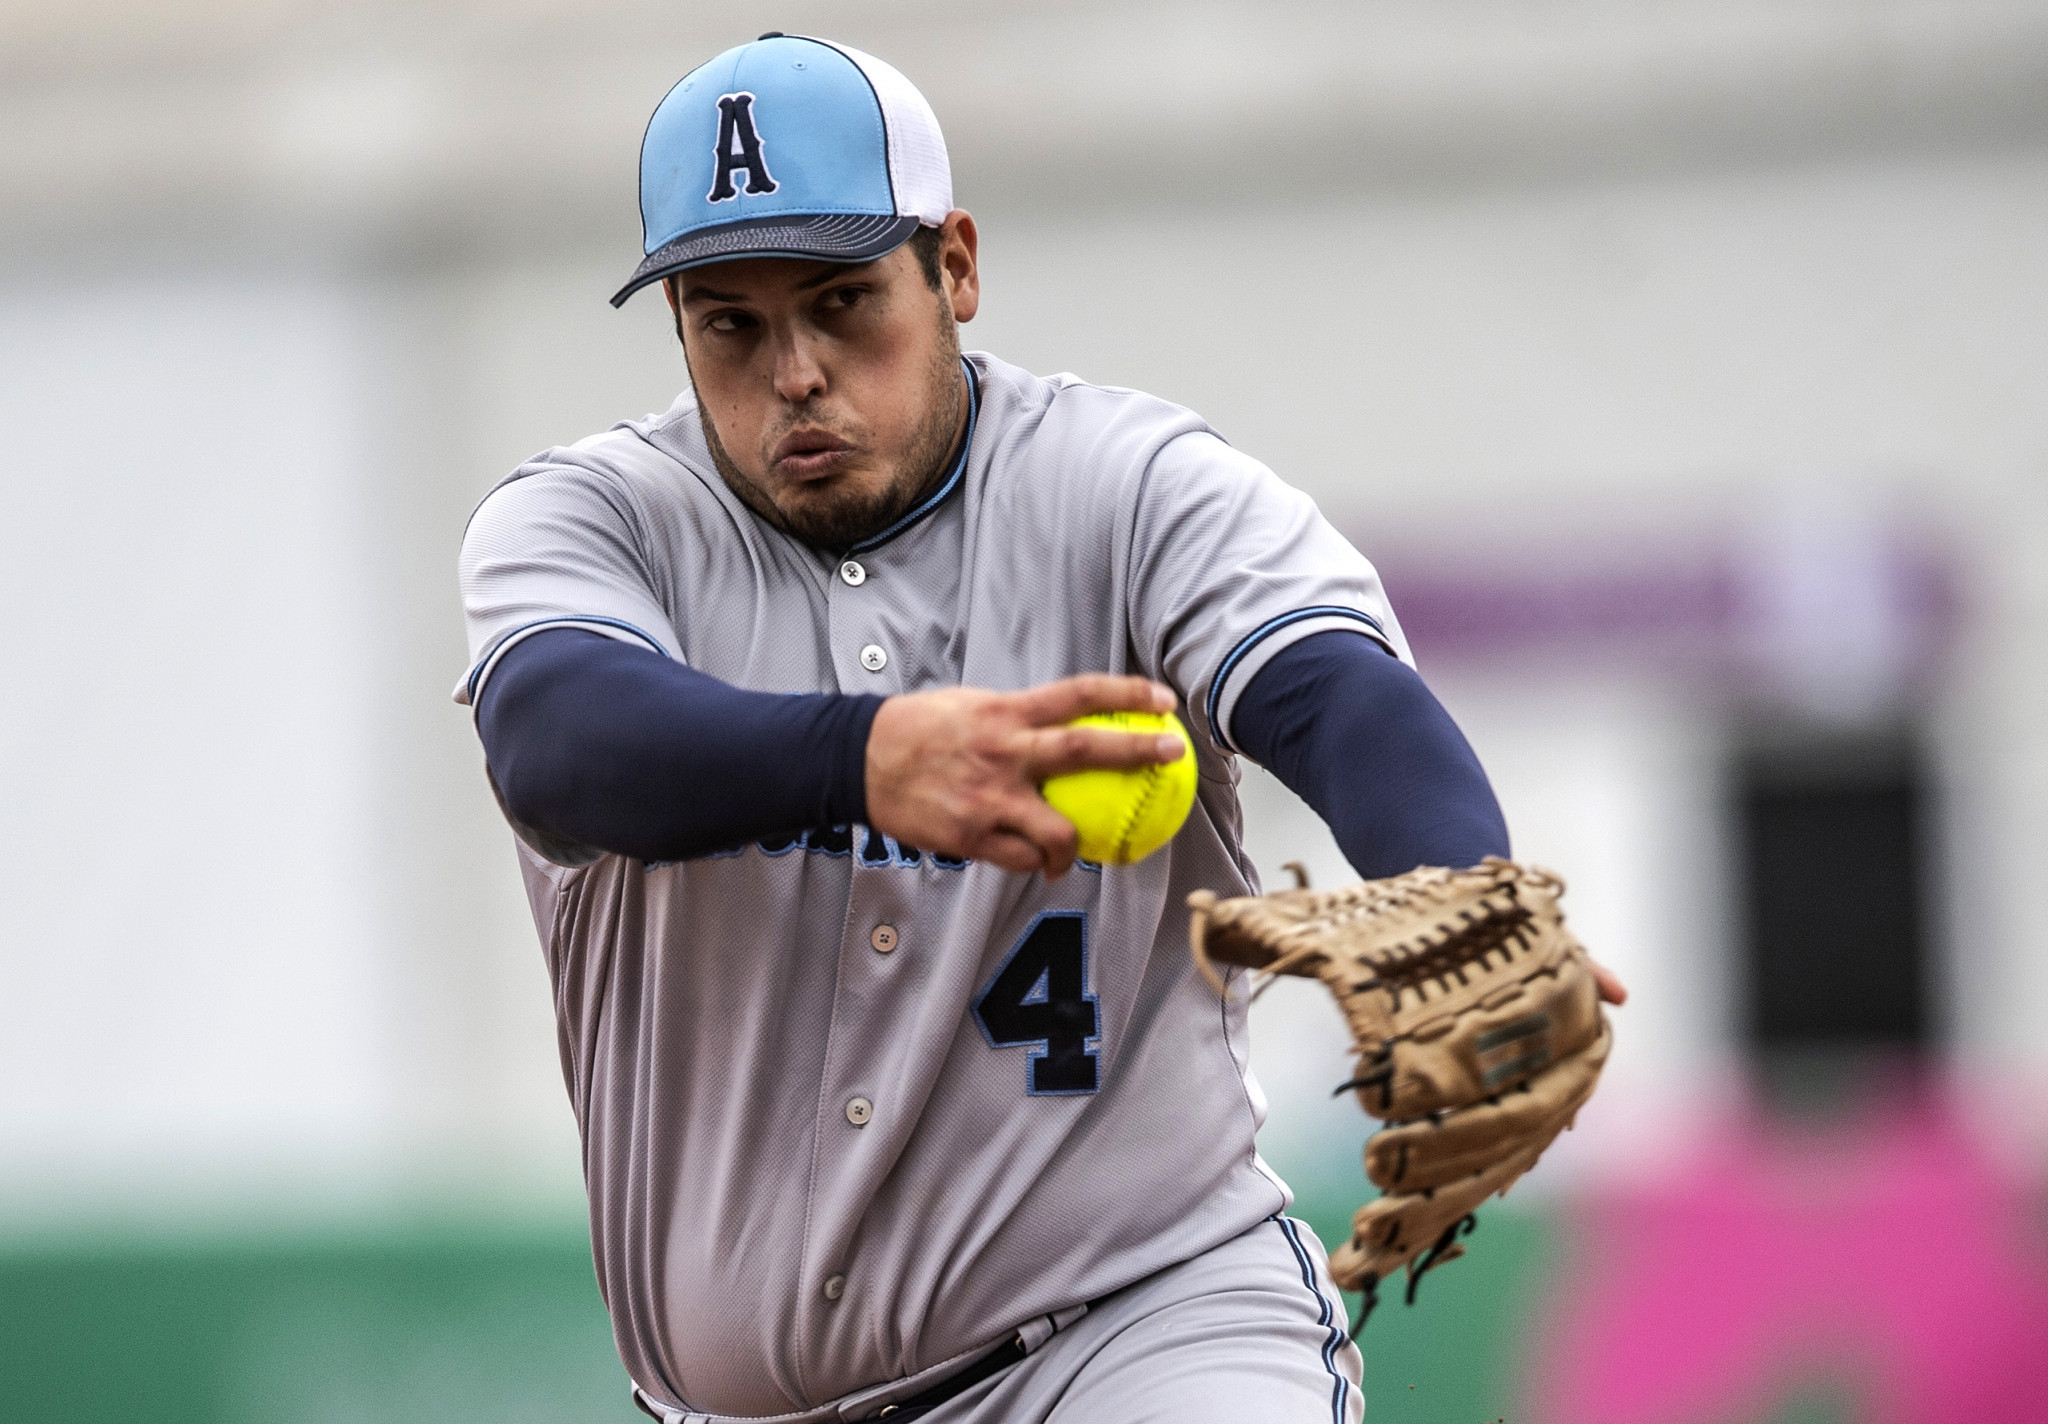 Argentina to host first Under-23 Men's Softball World Cup in 2021